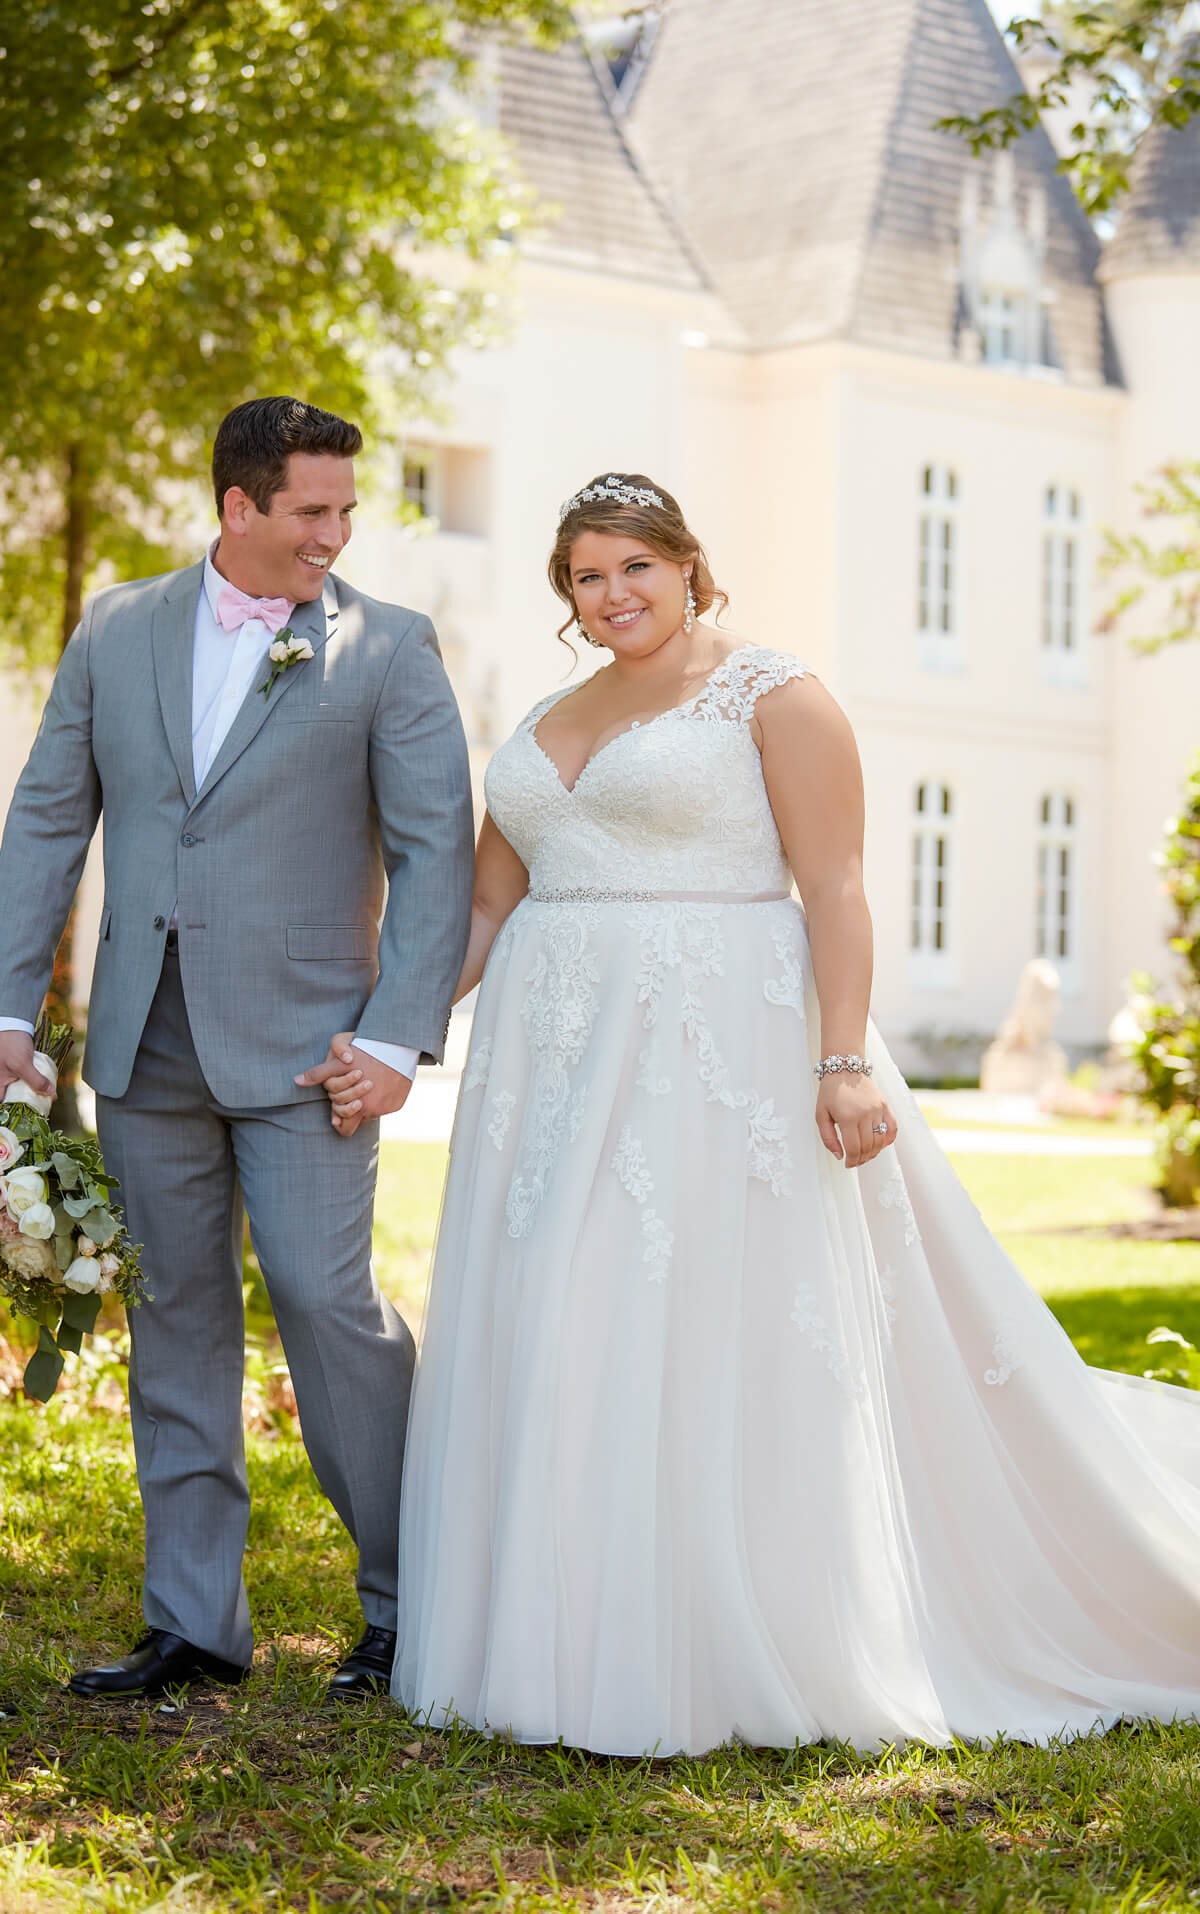 plus-sized bride in long gown with train and sweetheart neckline